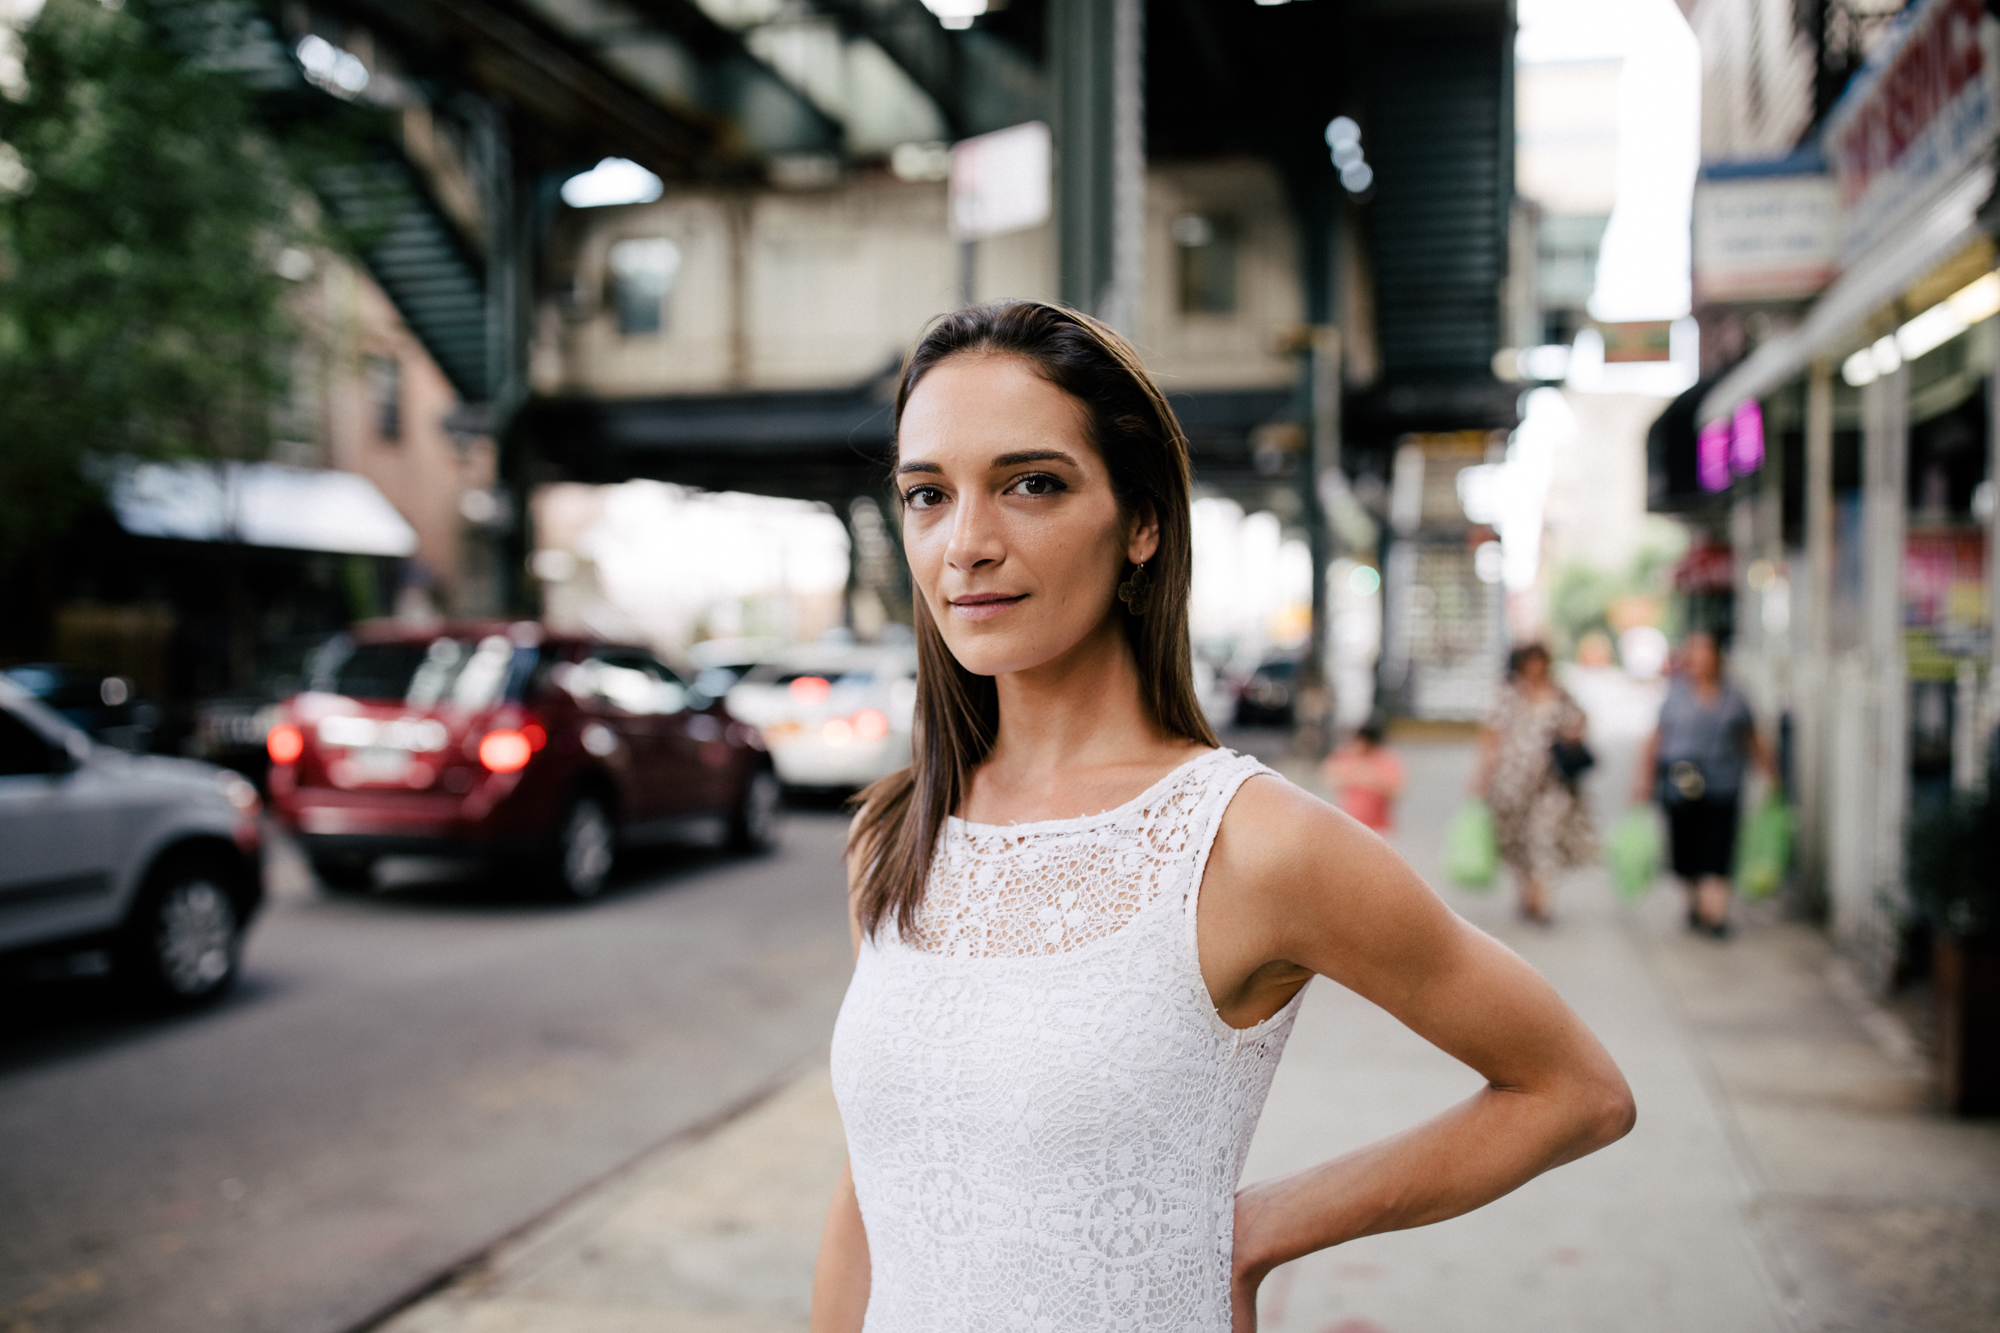 Meet Julia Salazar The Next Democratic Socialist Poised For A Long Shot Win Broadly